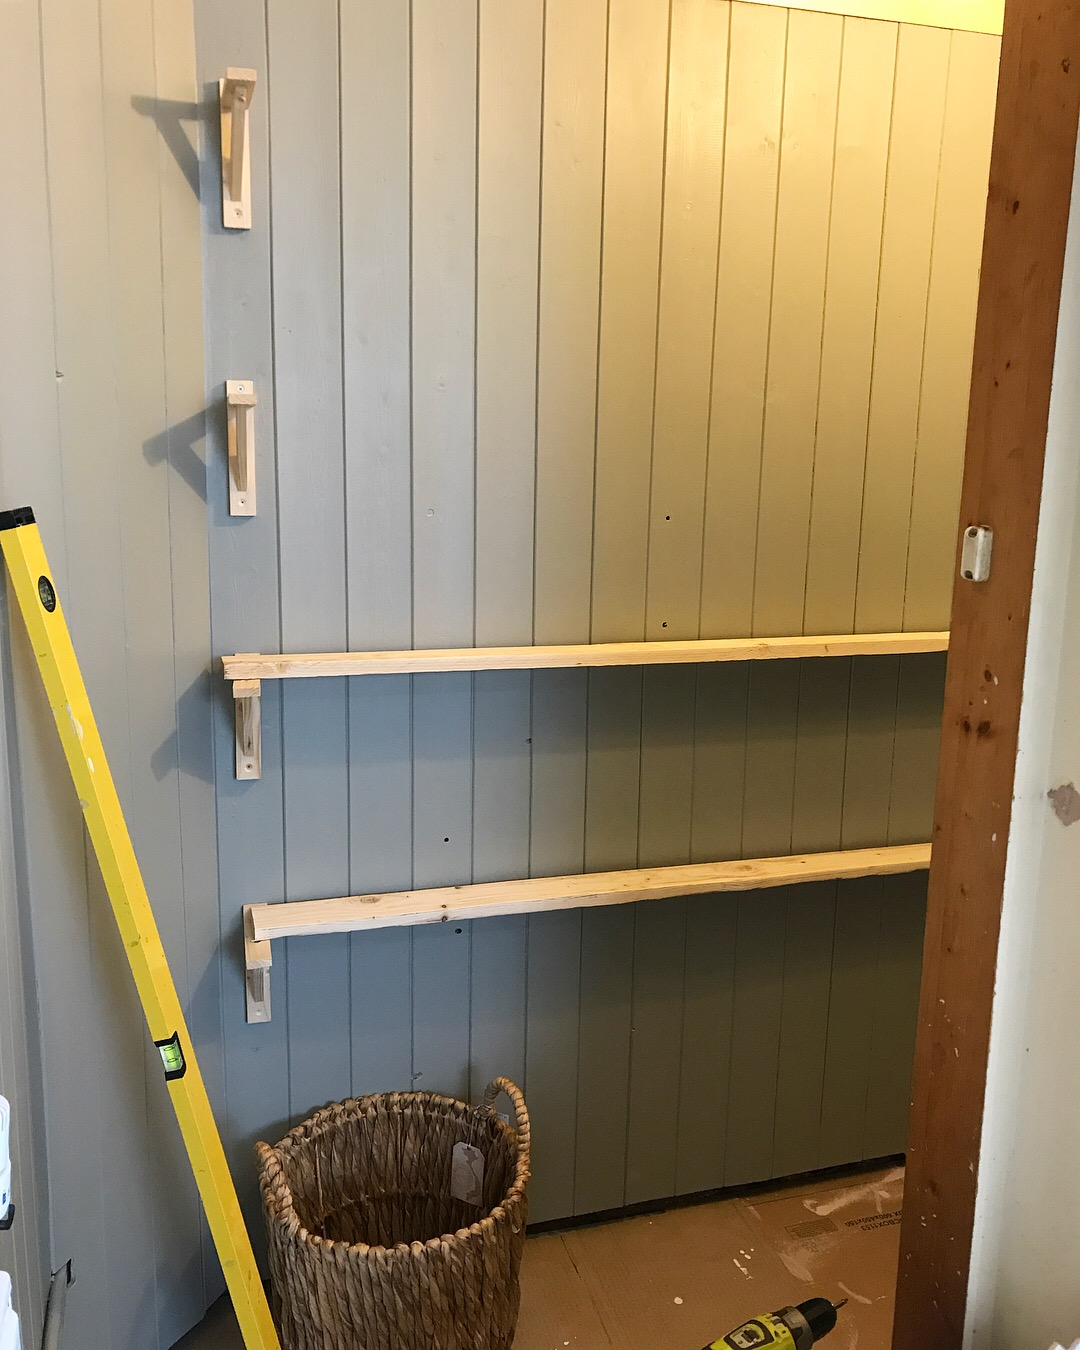 Rustic Shelves in Pantry